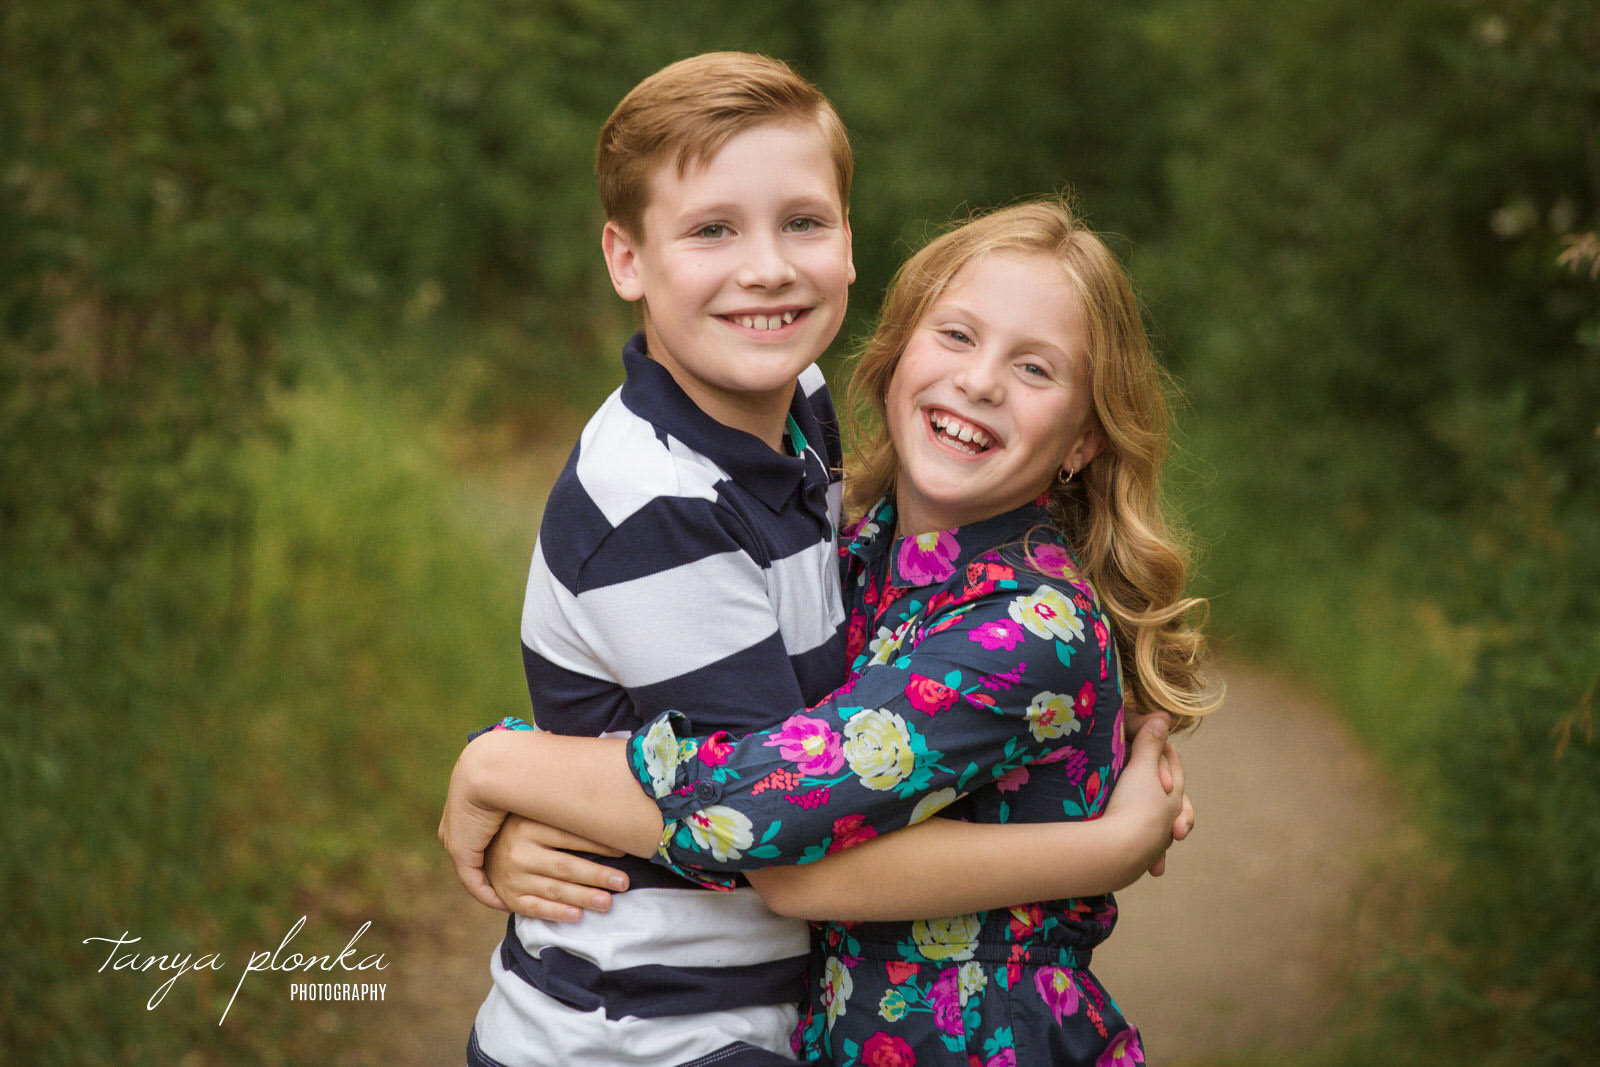 young brother and sister hug while smiling at the camera